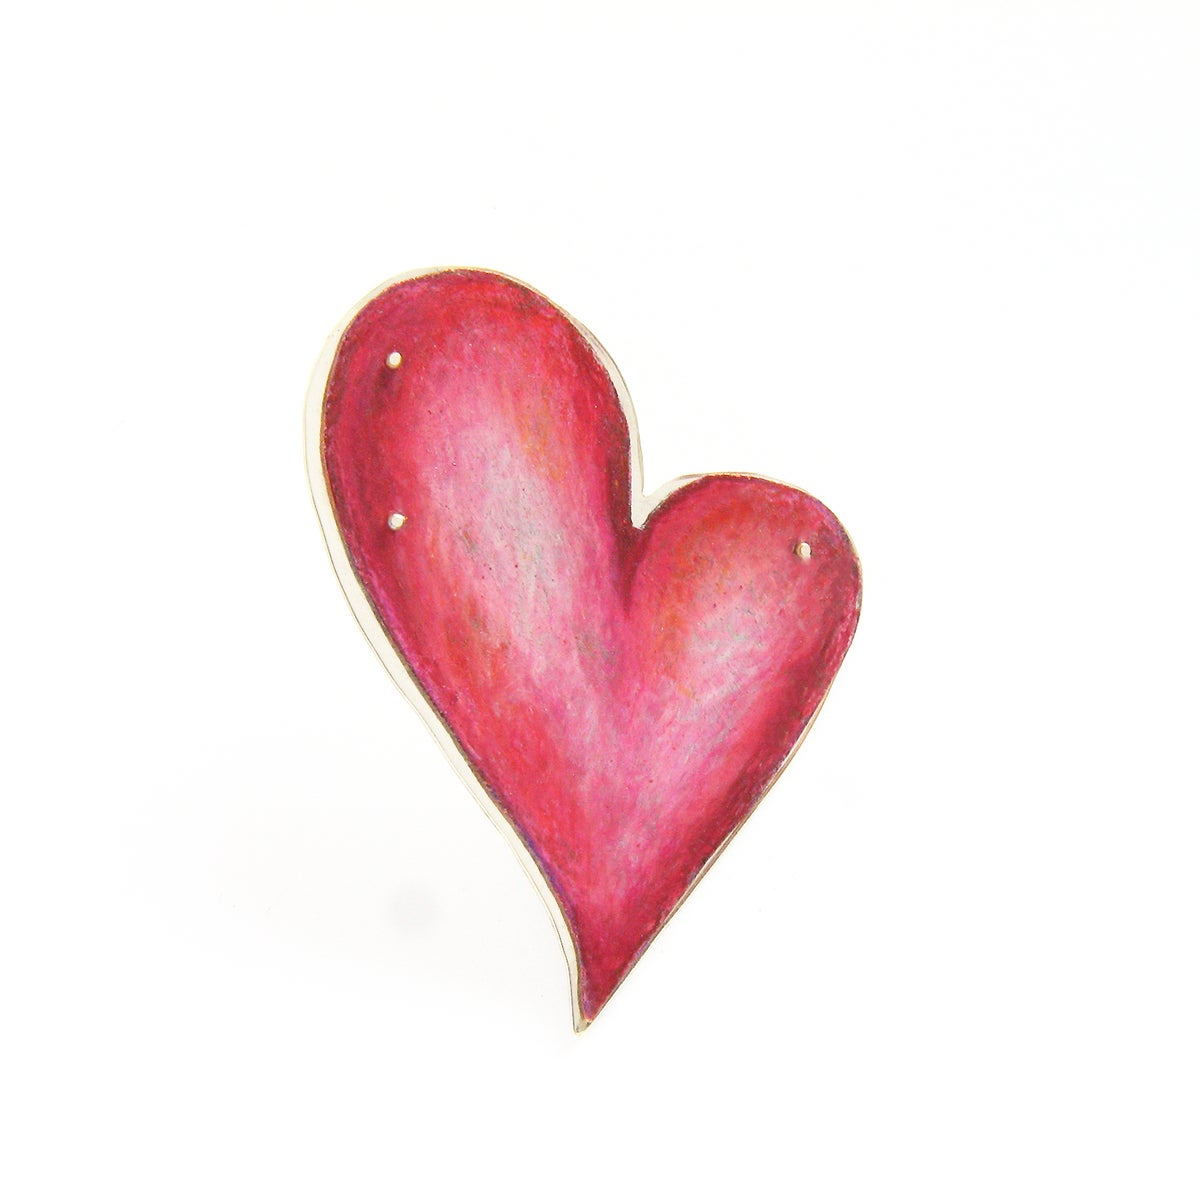 Image of Whole Lotta Love Heart Brooch